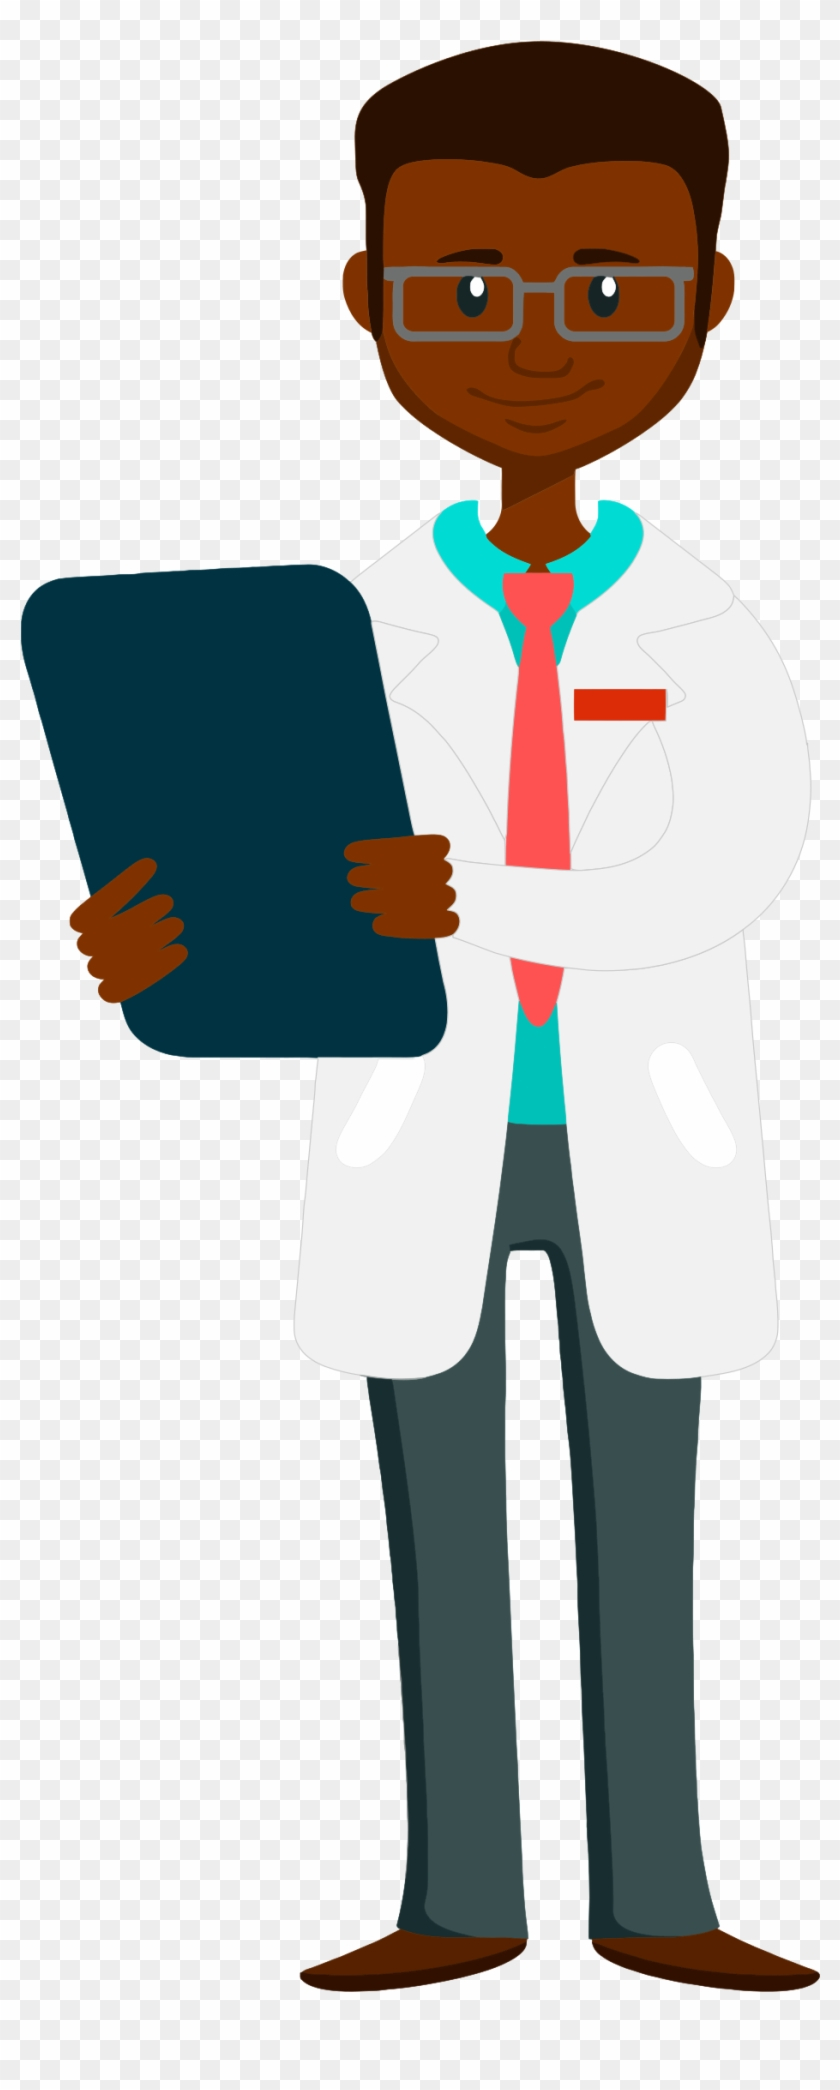 Doctor - African American Doctor Clipart #18491